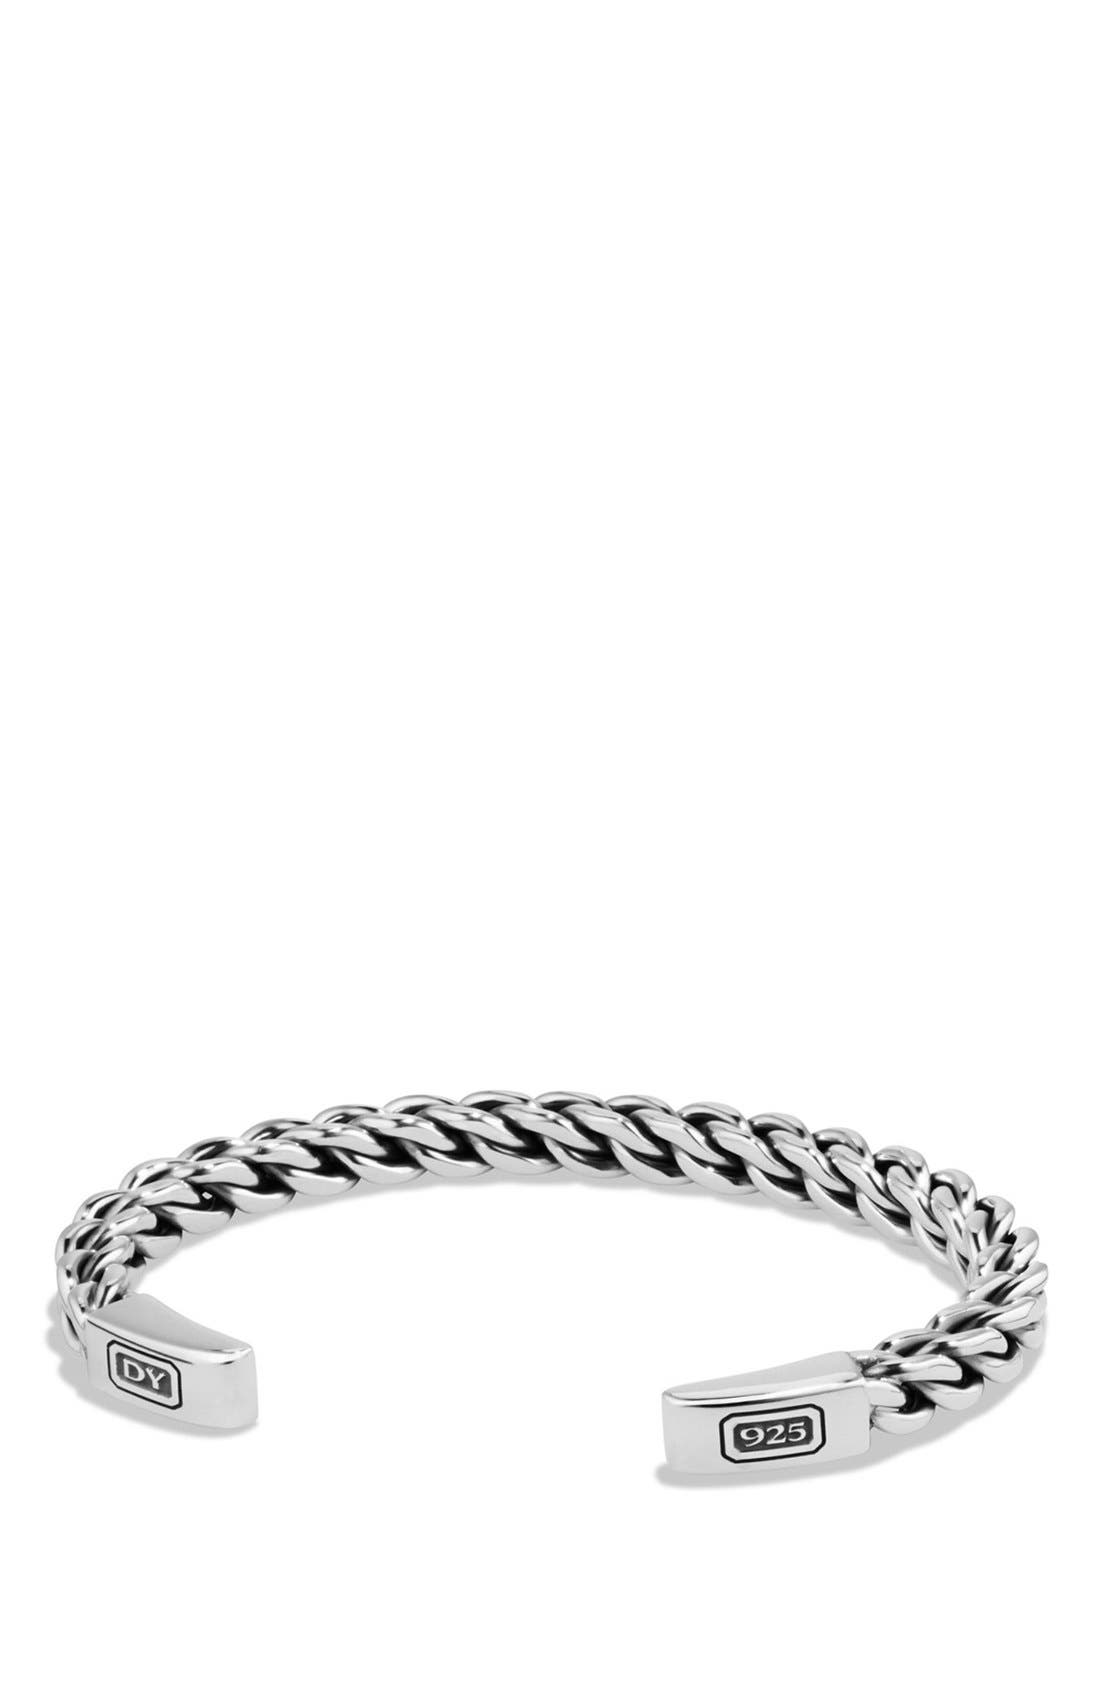 Main Image - David Yurman 'Chain' Woven Cuff Bracelet